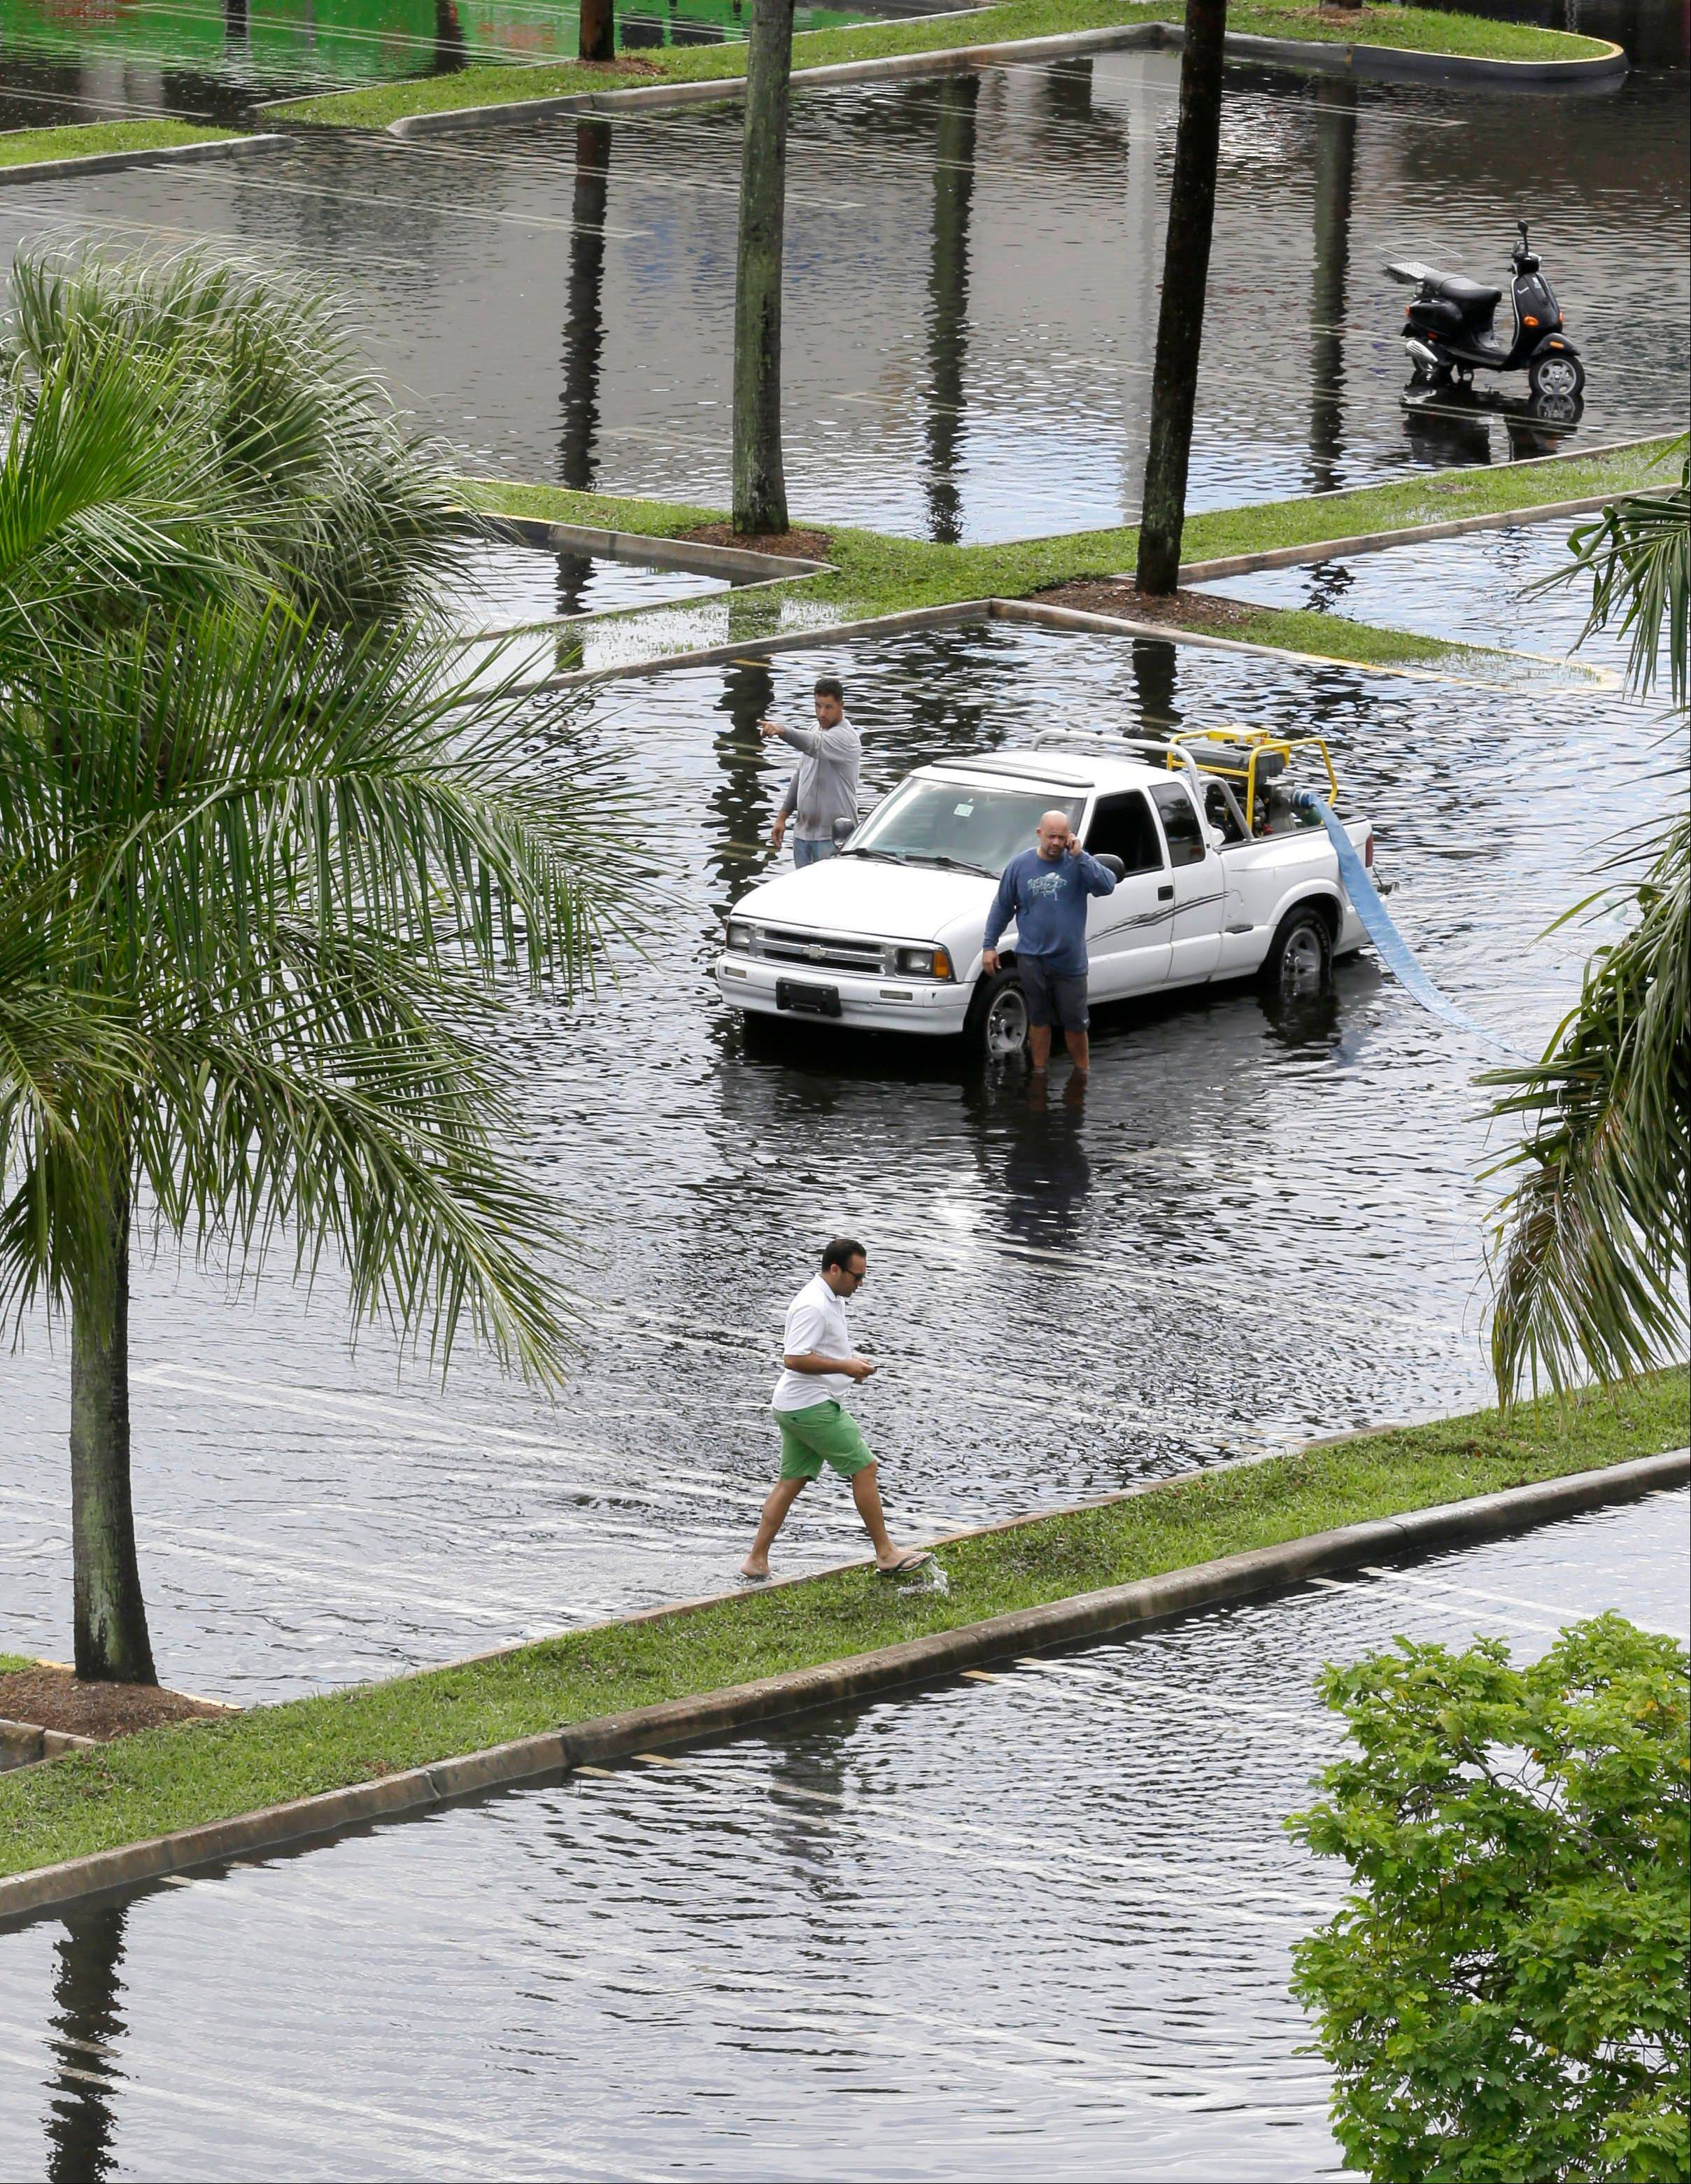 Workers pump water from the parking lot of a shopping center Thursday, after heavy rains in Pinecrest, Fla., a suburb of Miami. Preparations began Thursday along the central Gulf Coast as newly formed Tropical Storm Karen approached.